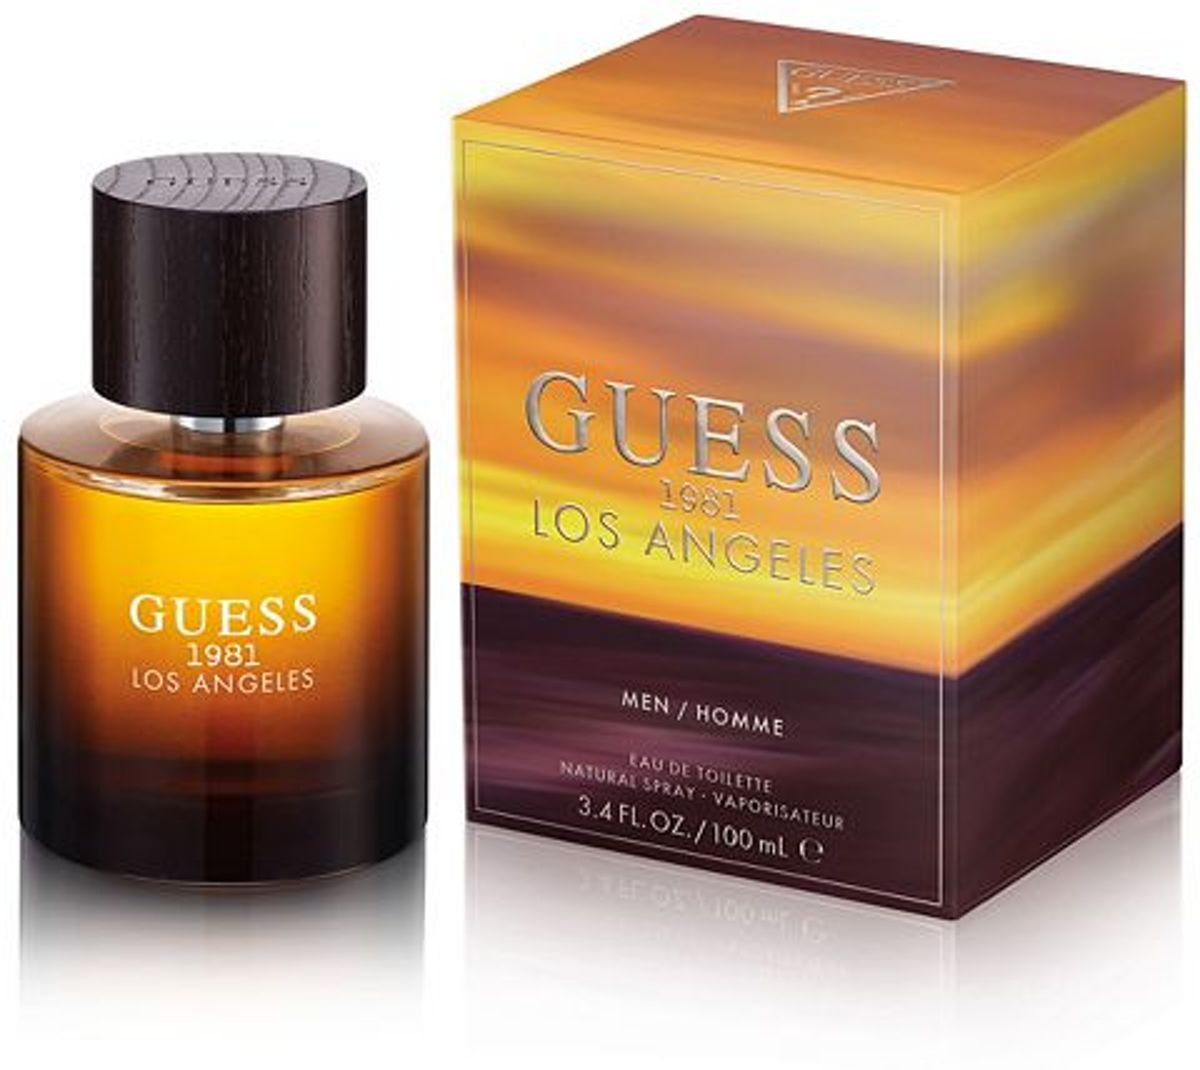 Guess 1981 Los Angeles for men Eau de toilette - 100 ml